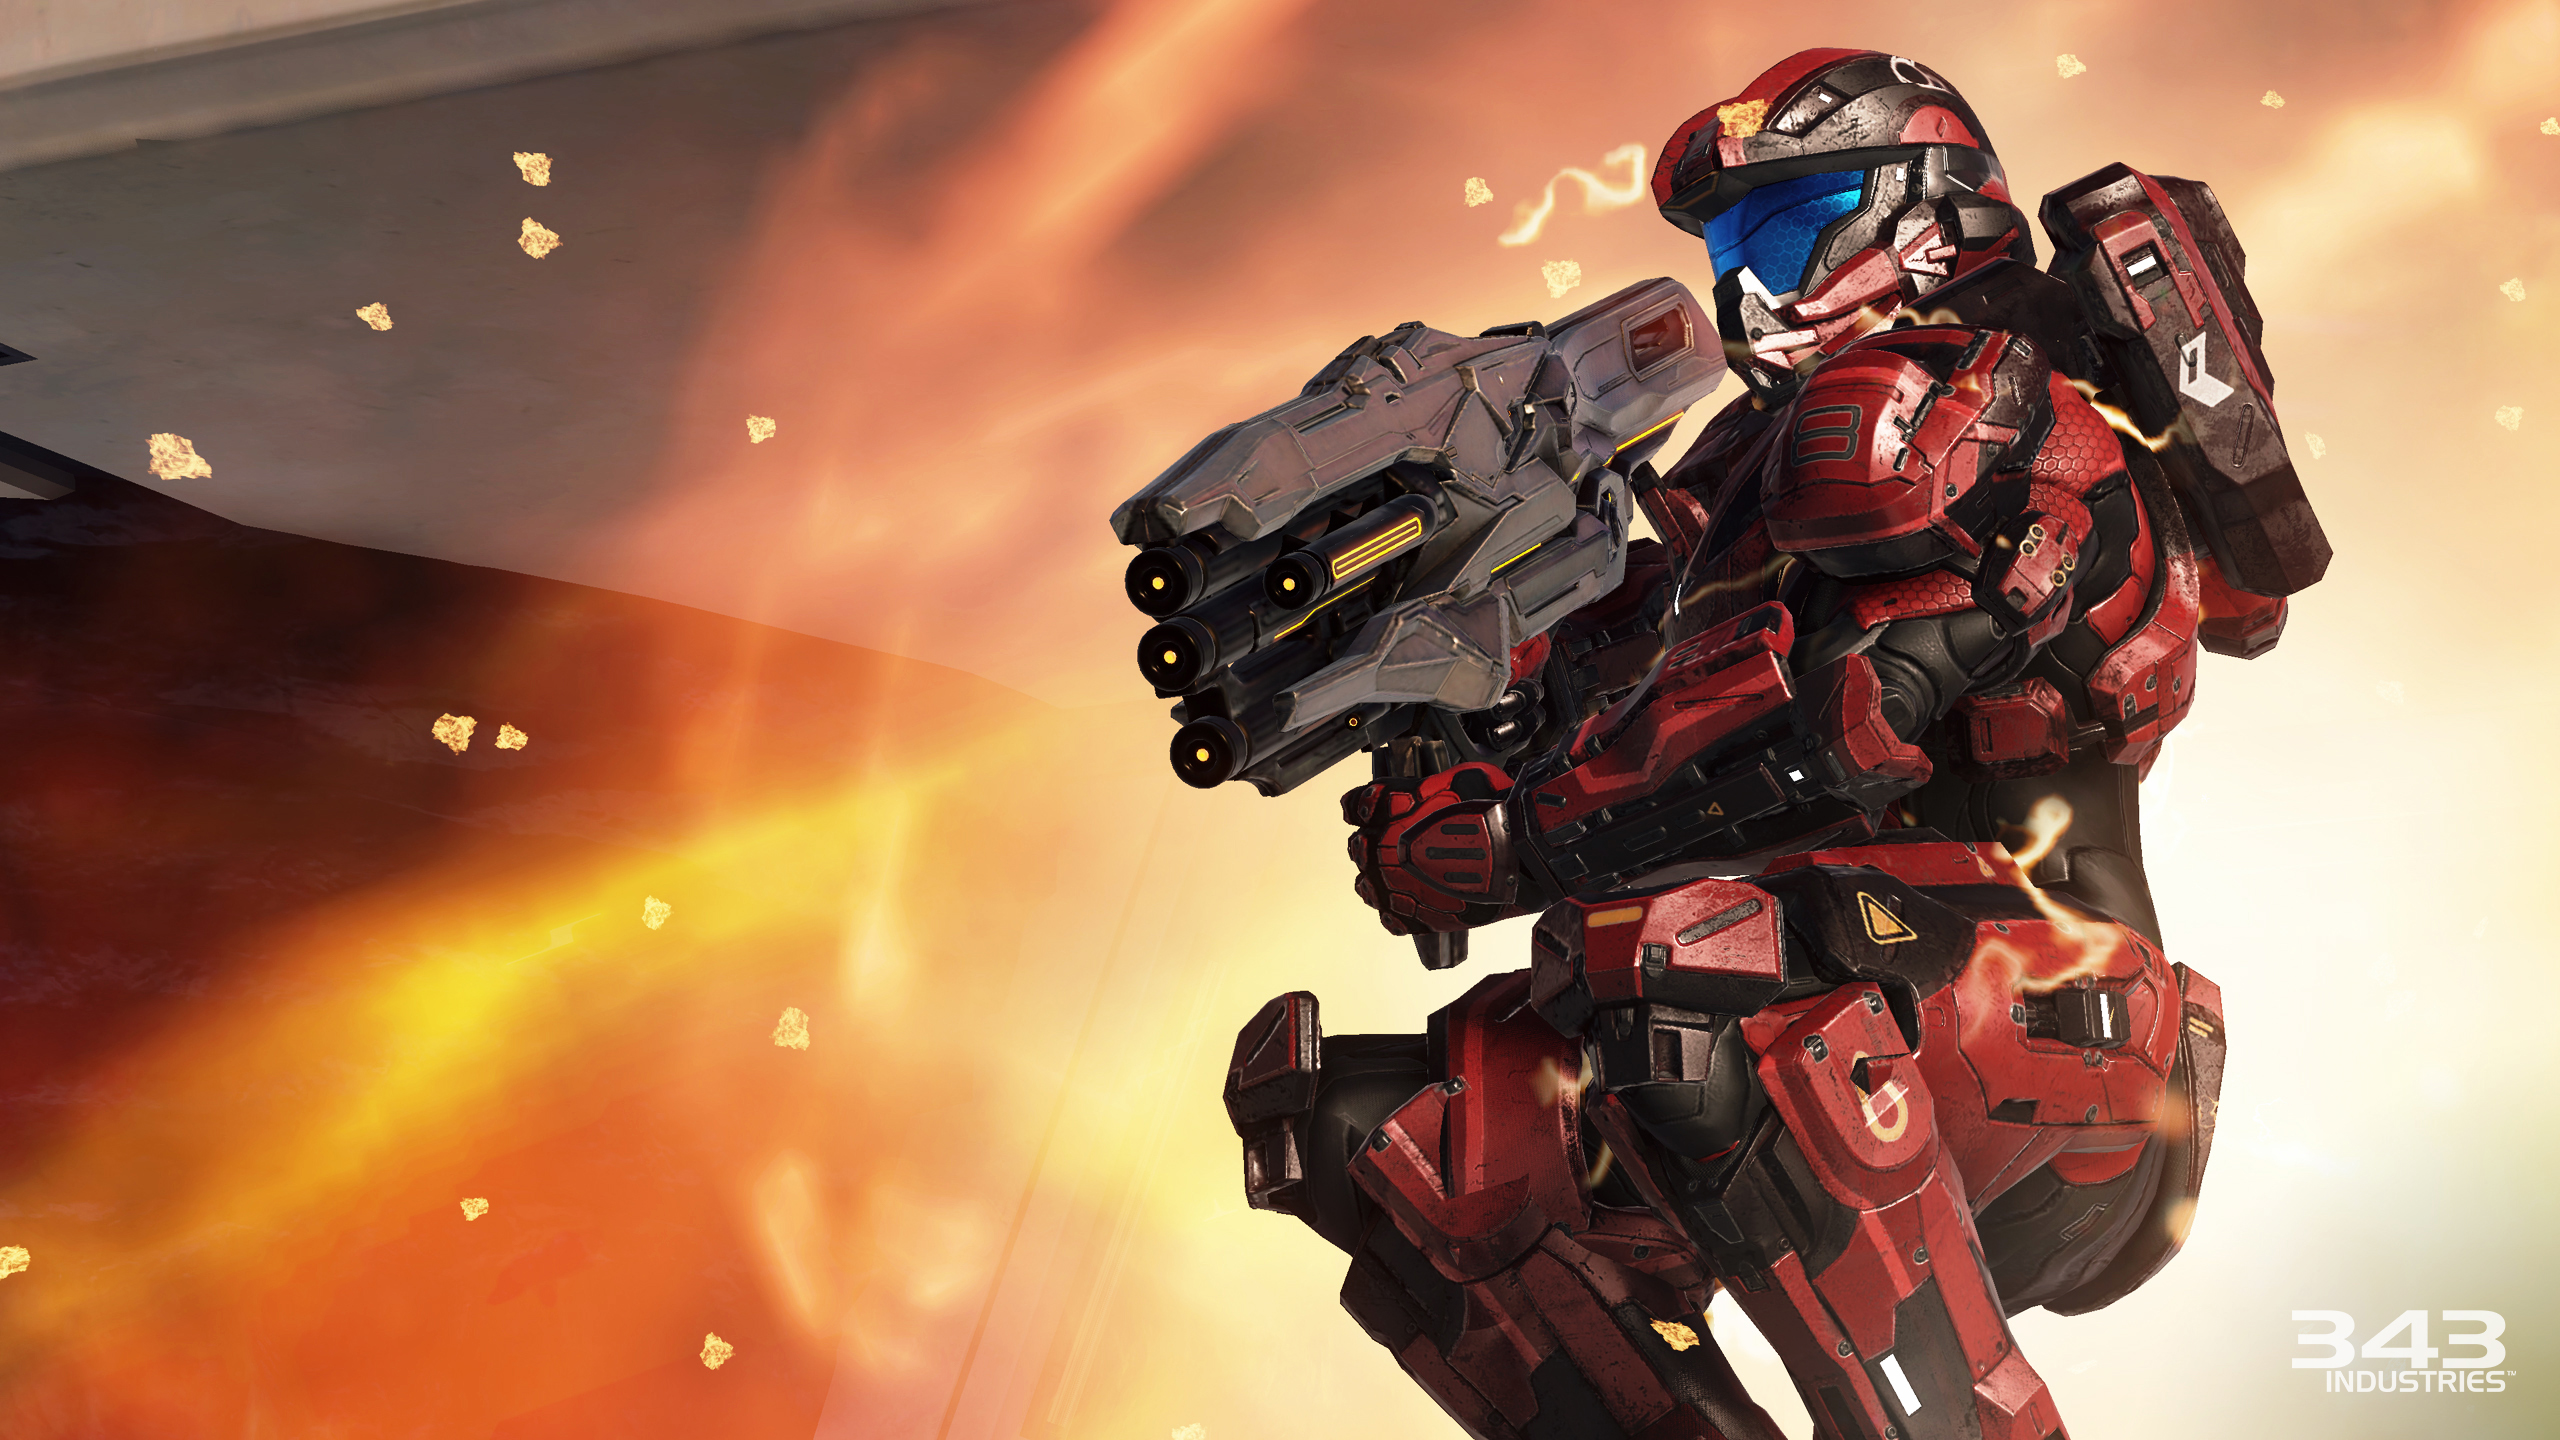 Halo 5: the Most Anticipated FPS of the Year - Newegg Blog